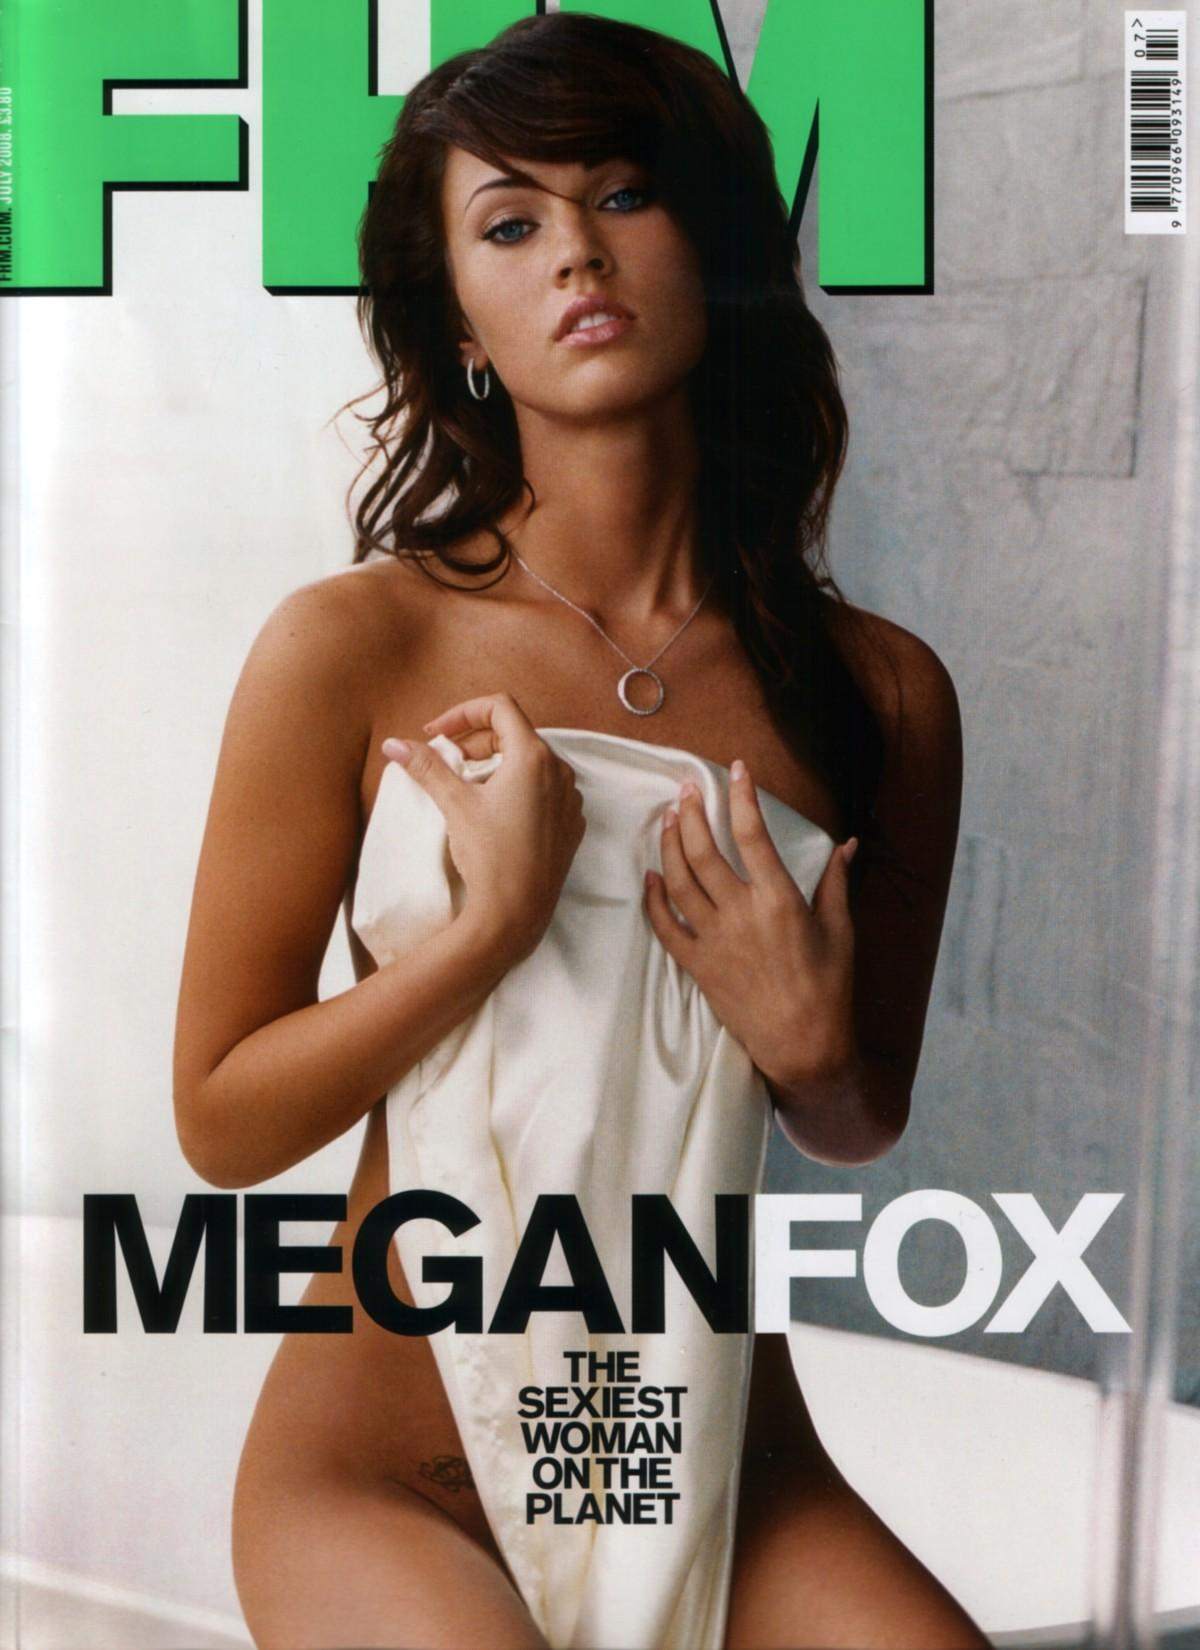 Megan Fox sin ropa interior 2